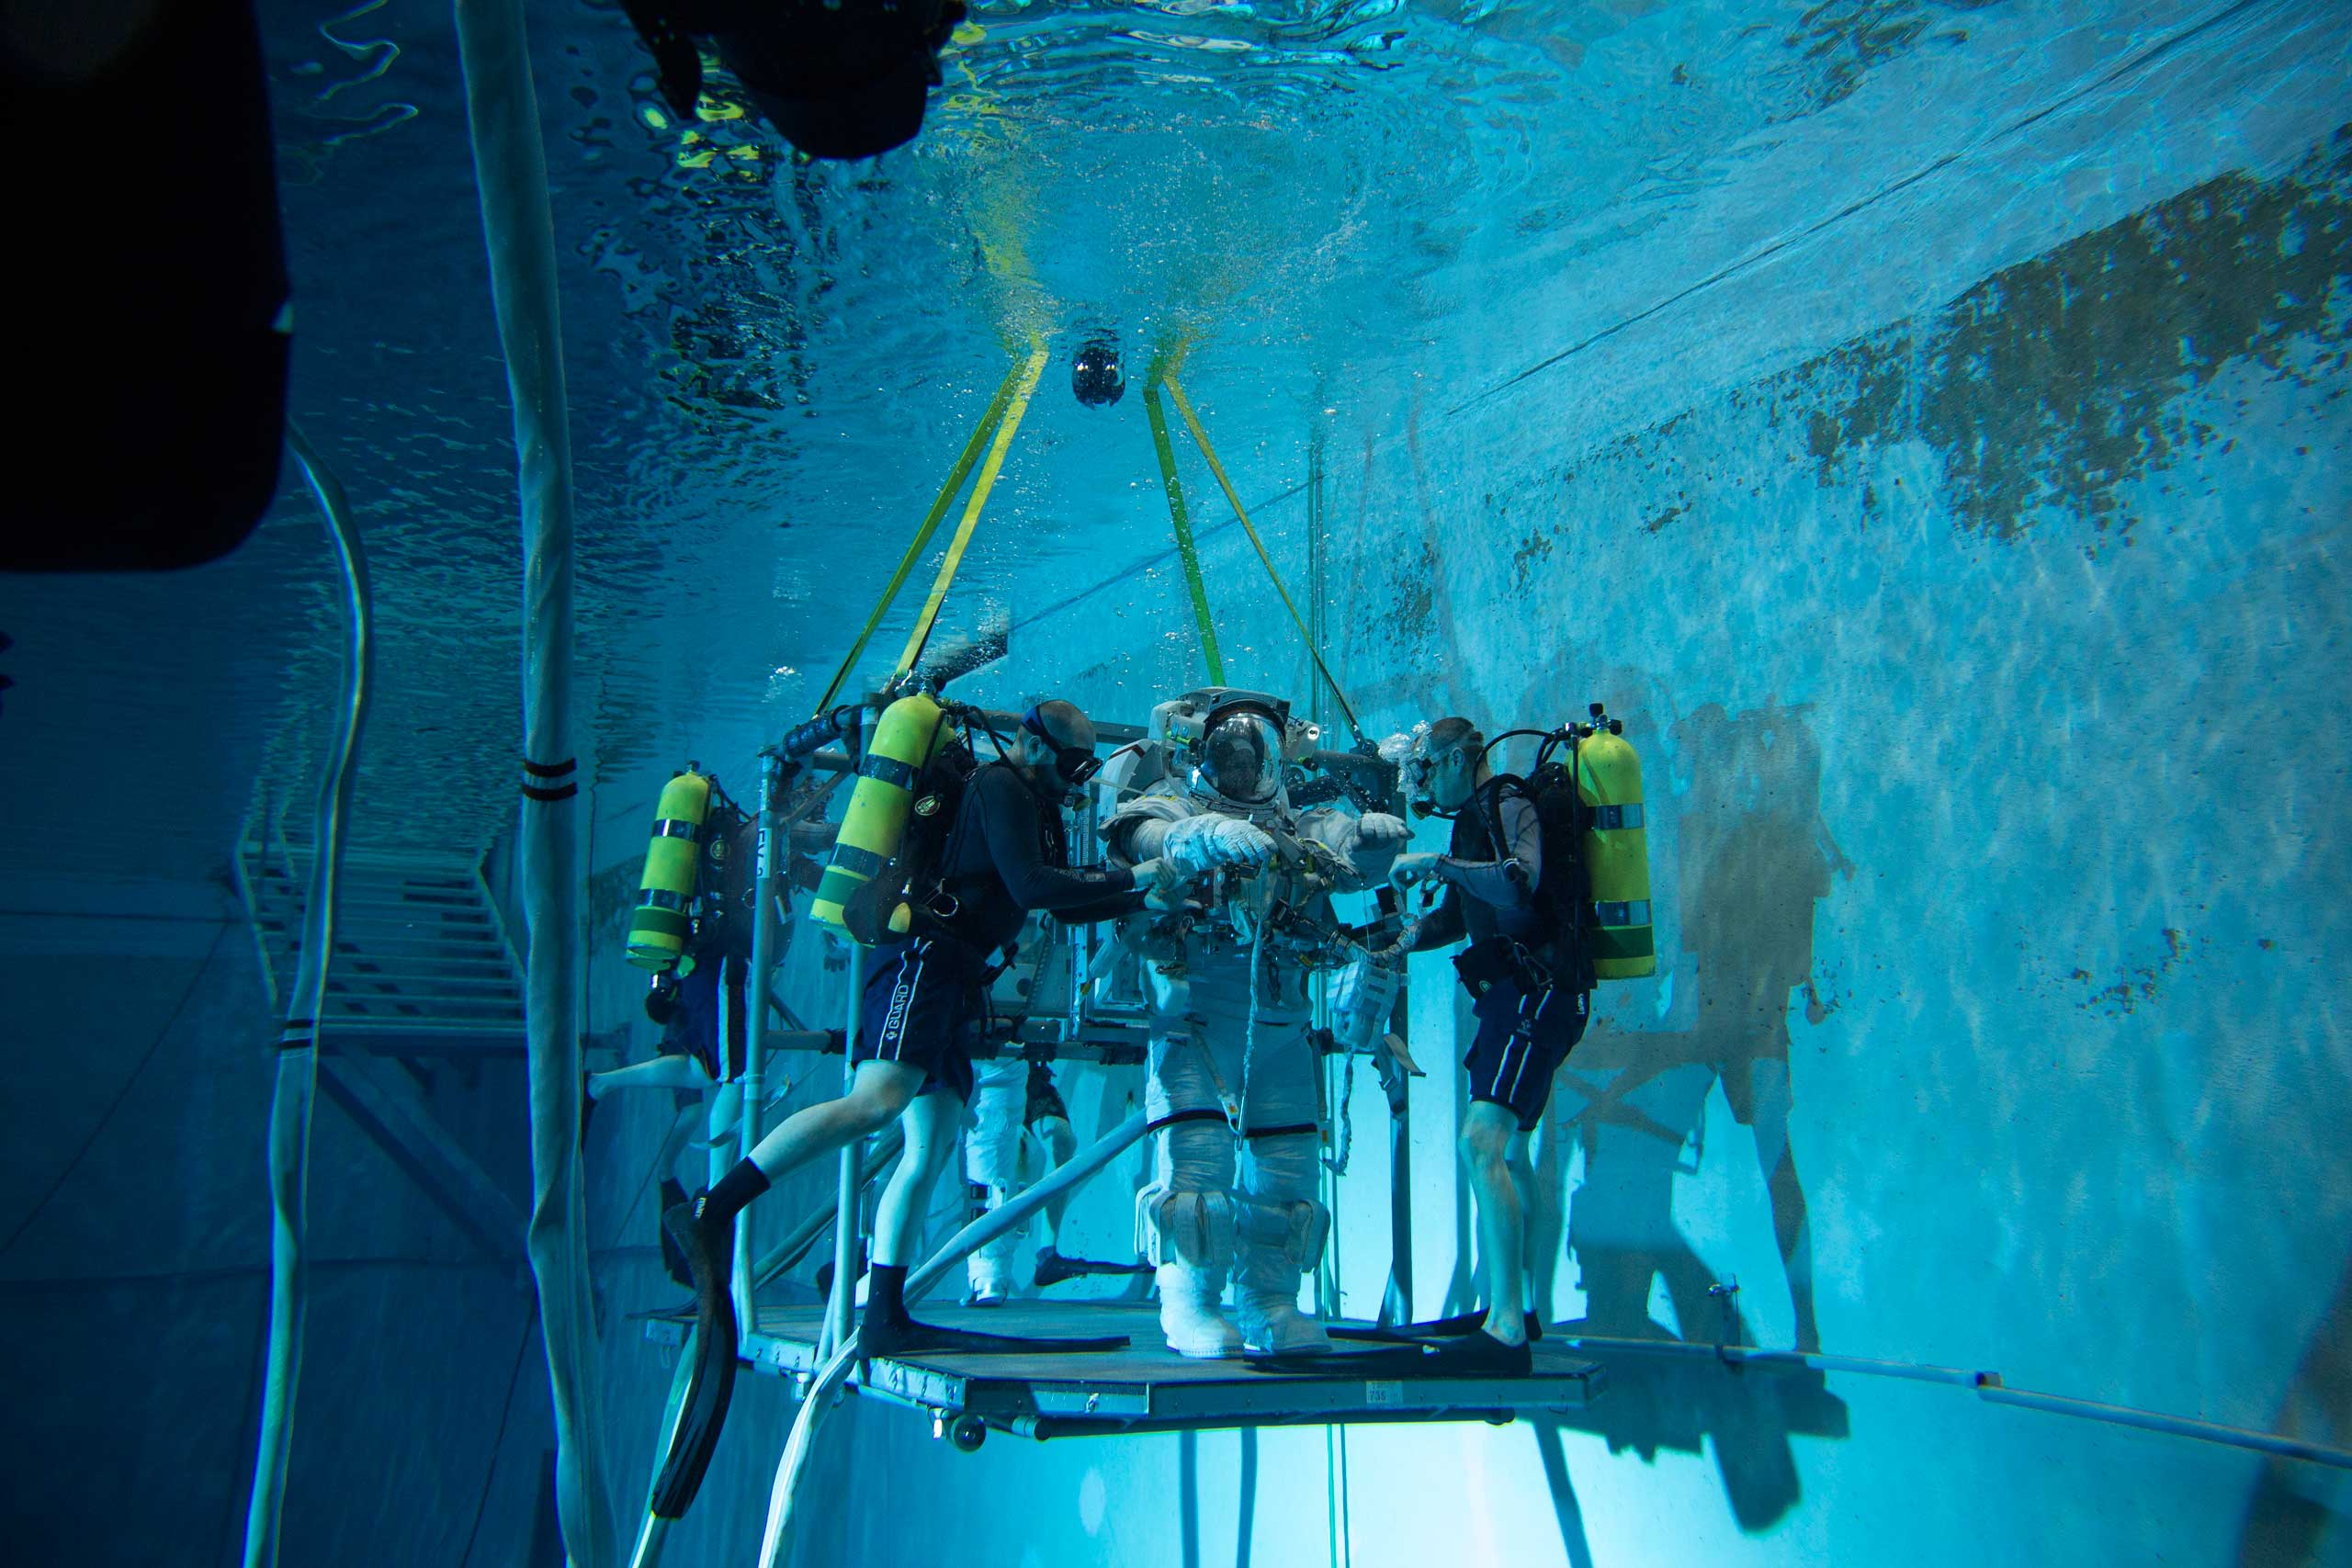 Divers check Scott Kelly's suit for leaks as he prepares for underwater training on in Houston on Feb. 2. Even though the spacesuit, which have been modified for use in the pool, weighs more than Scott, due to the air inside it, he does not sink like a rock in the pool, but instead becomes neutrally buoyant, simulating weightlessness.